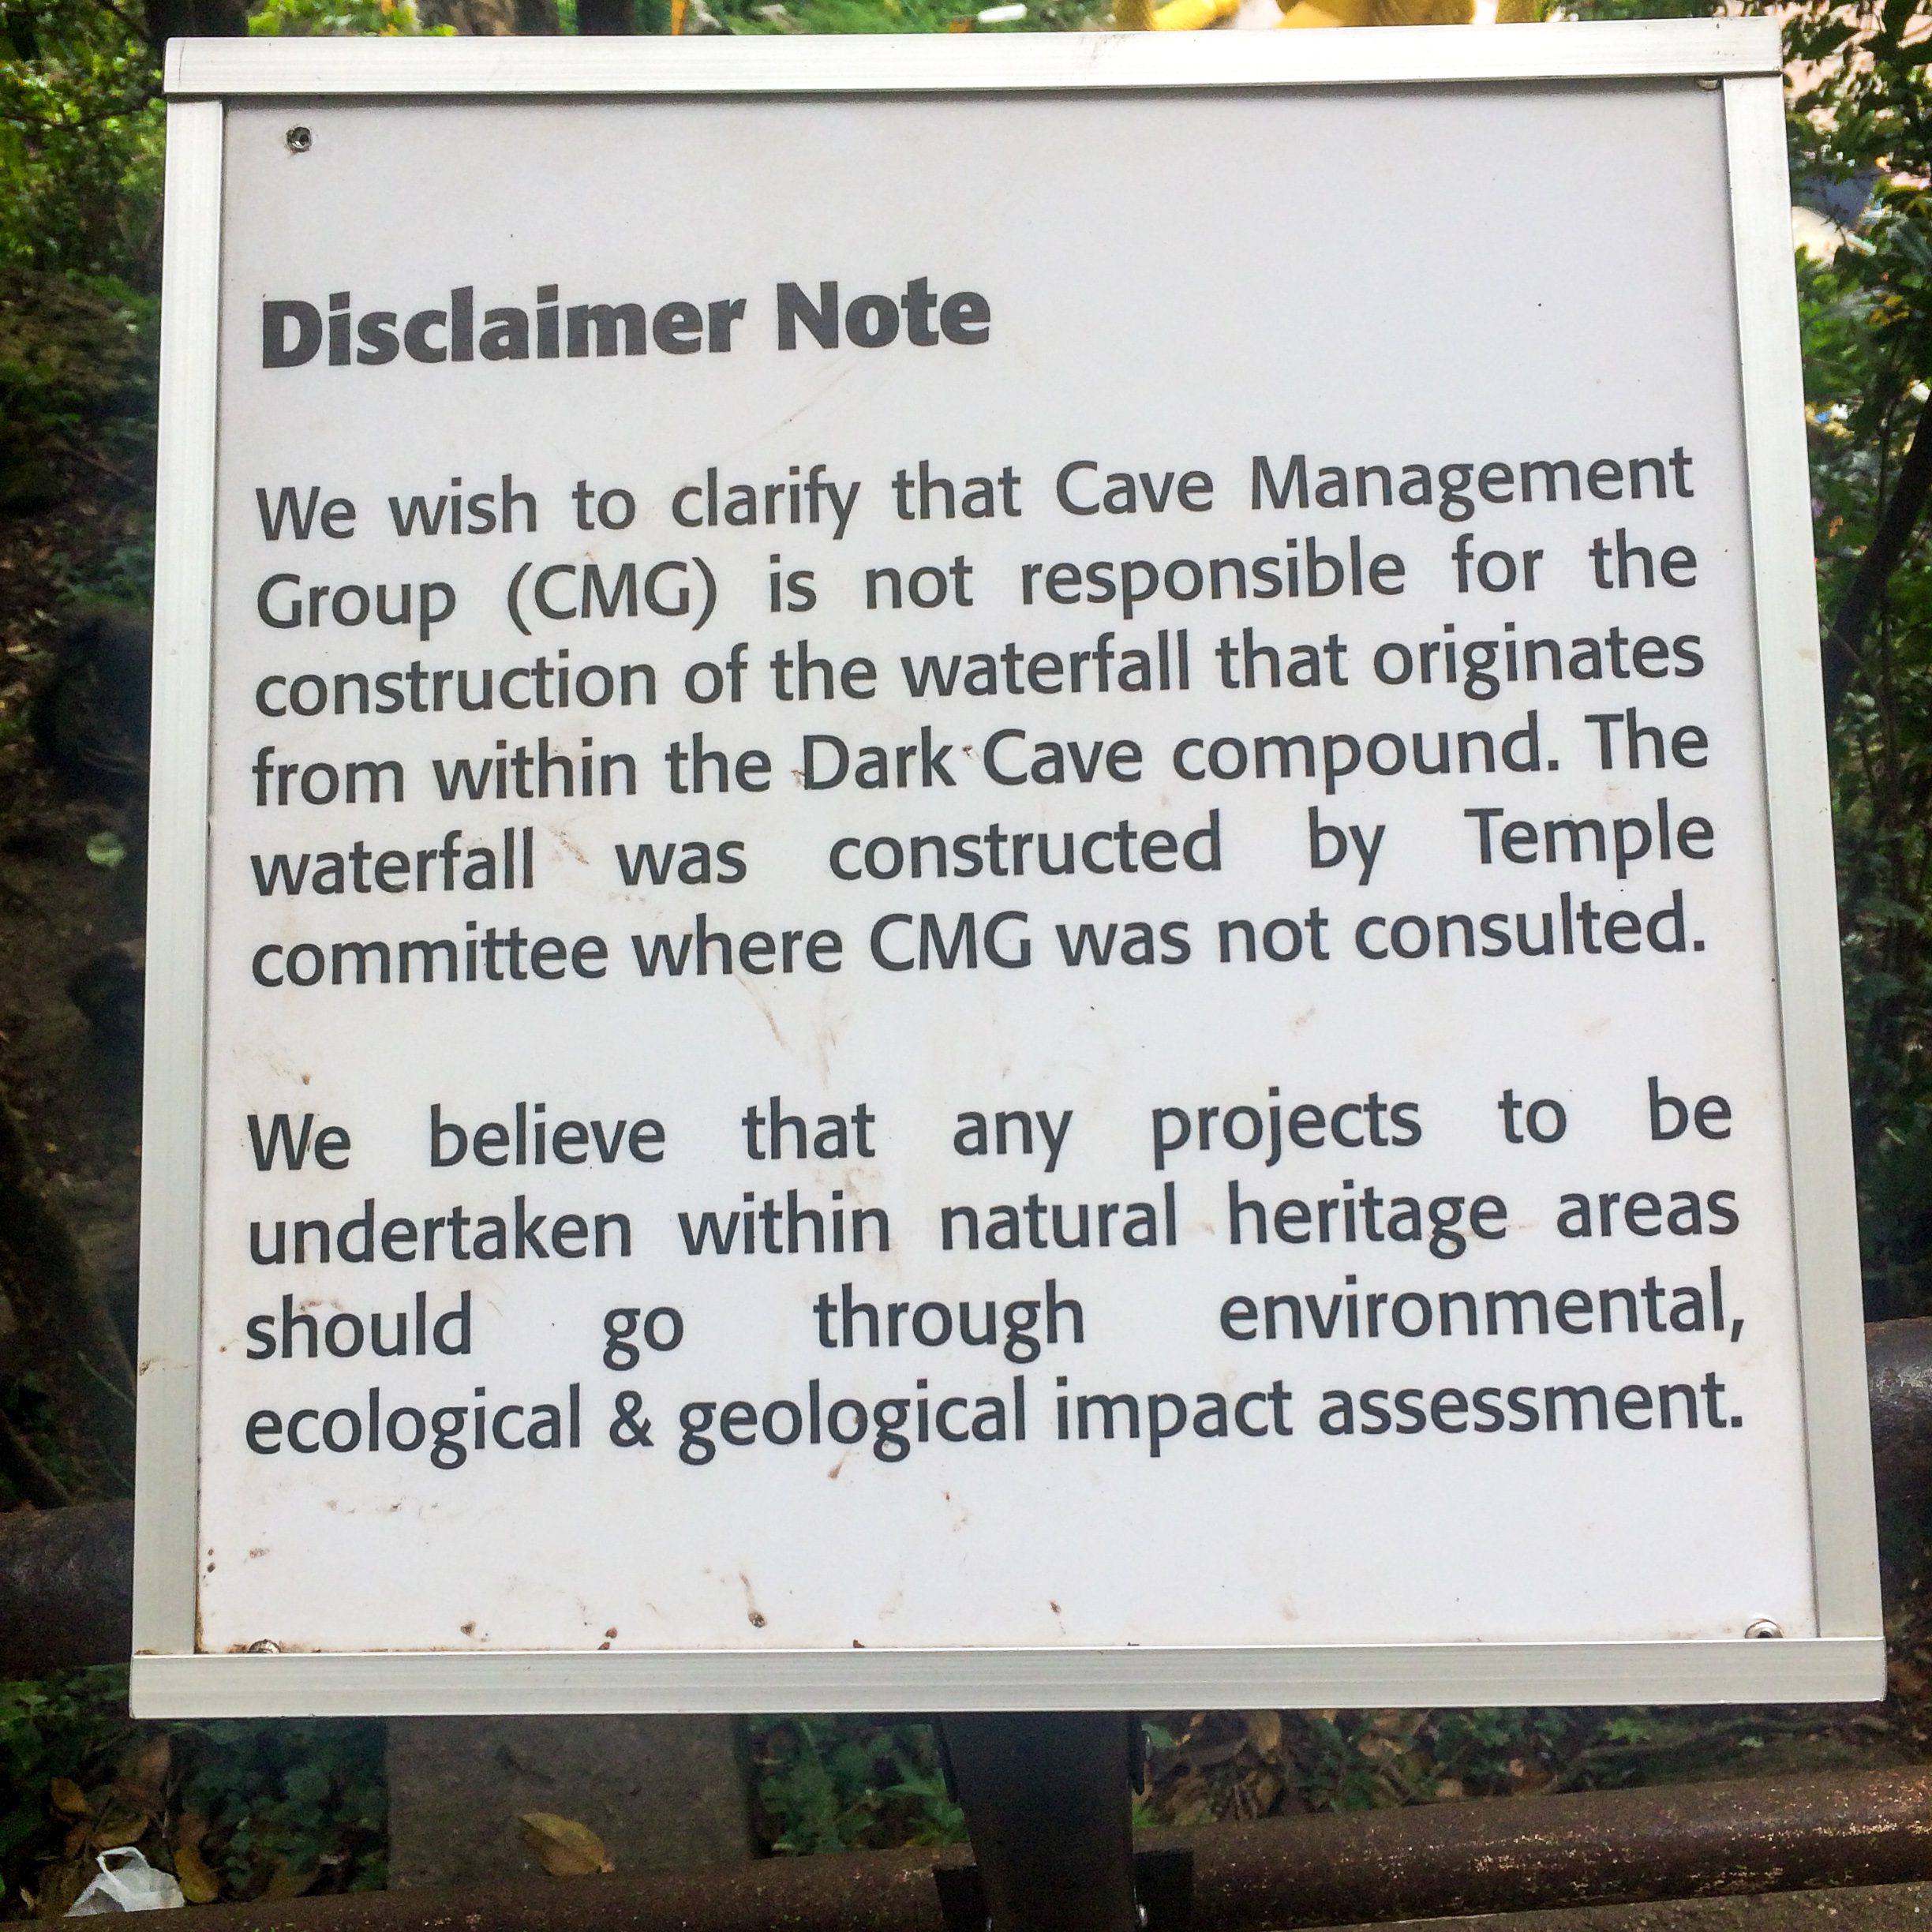 I think the Cave Management Group doesn't like that waterfall.